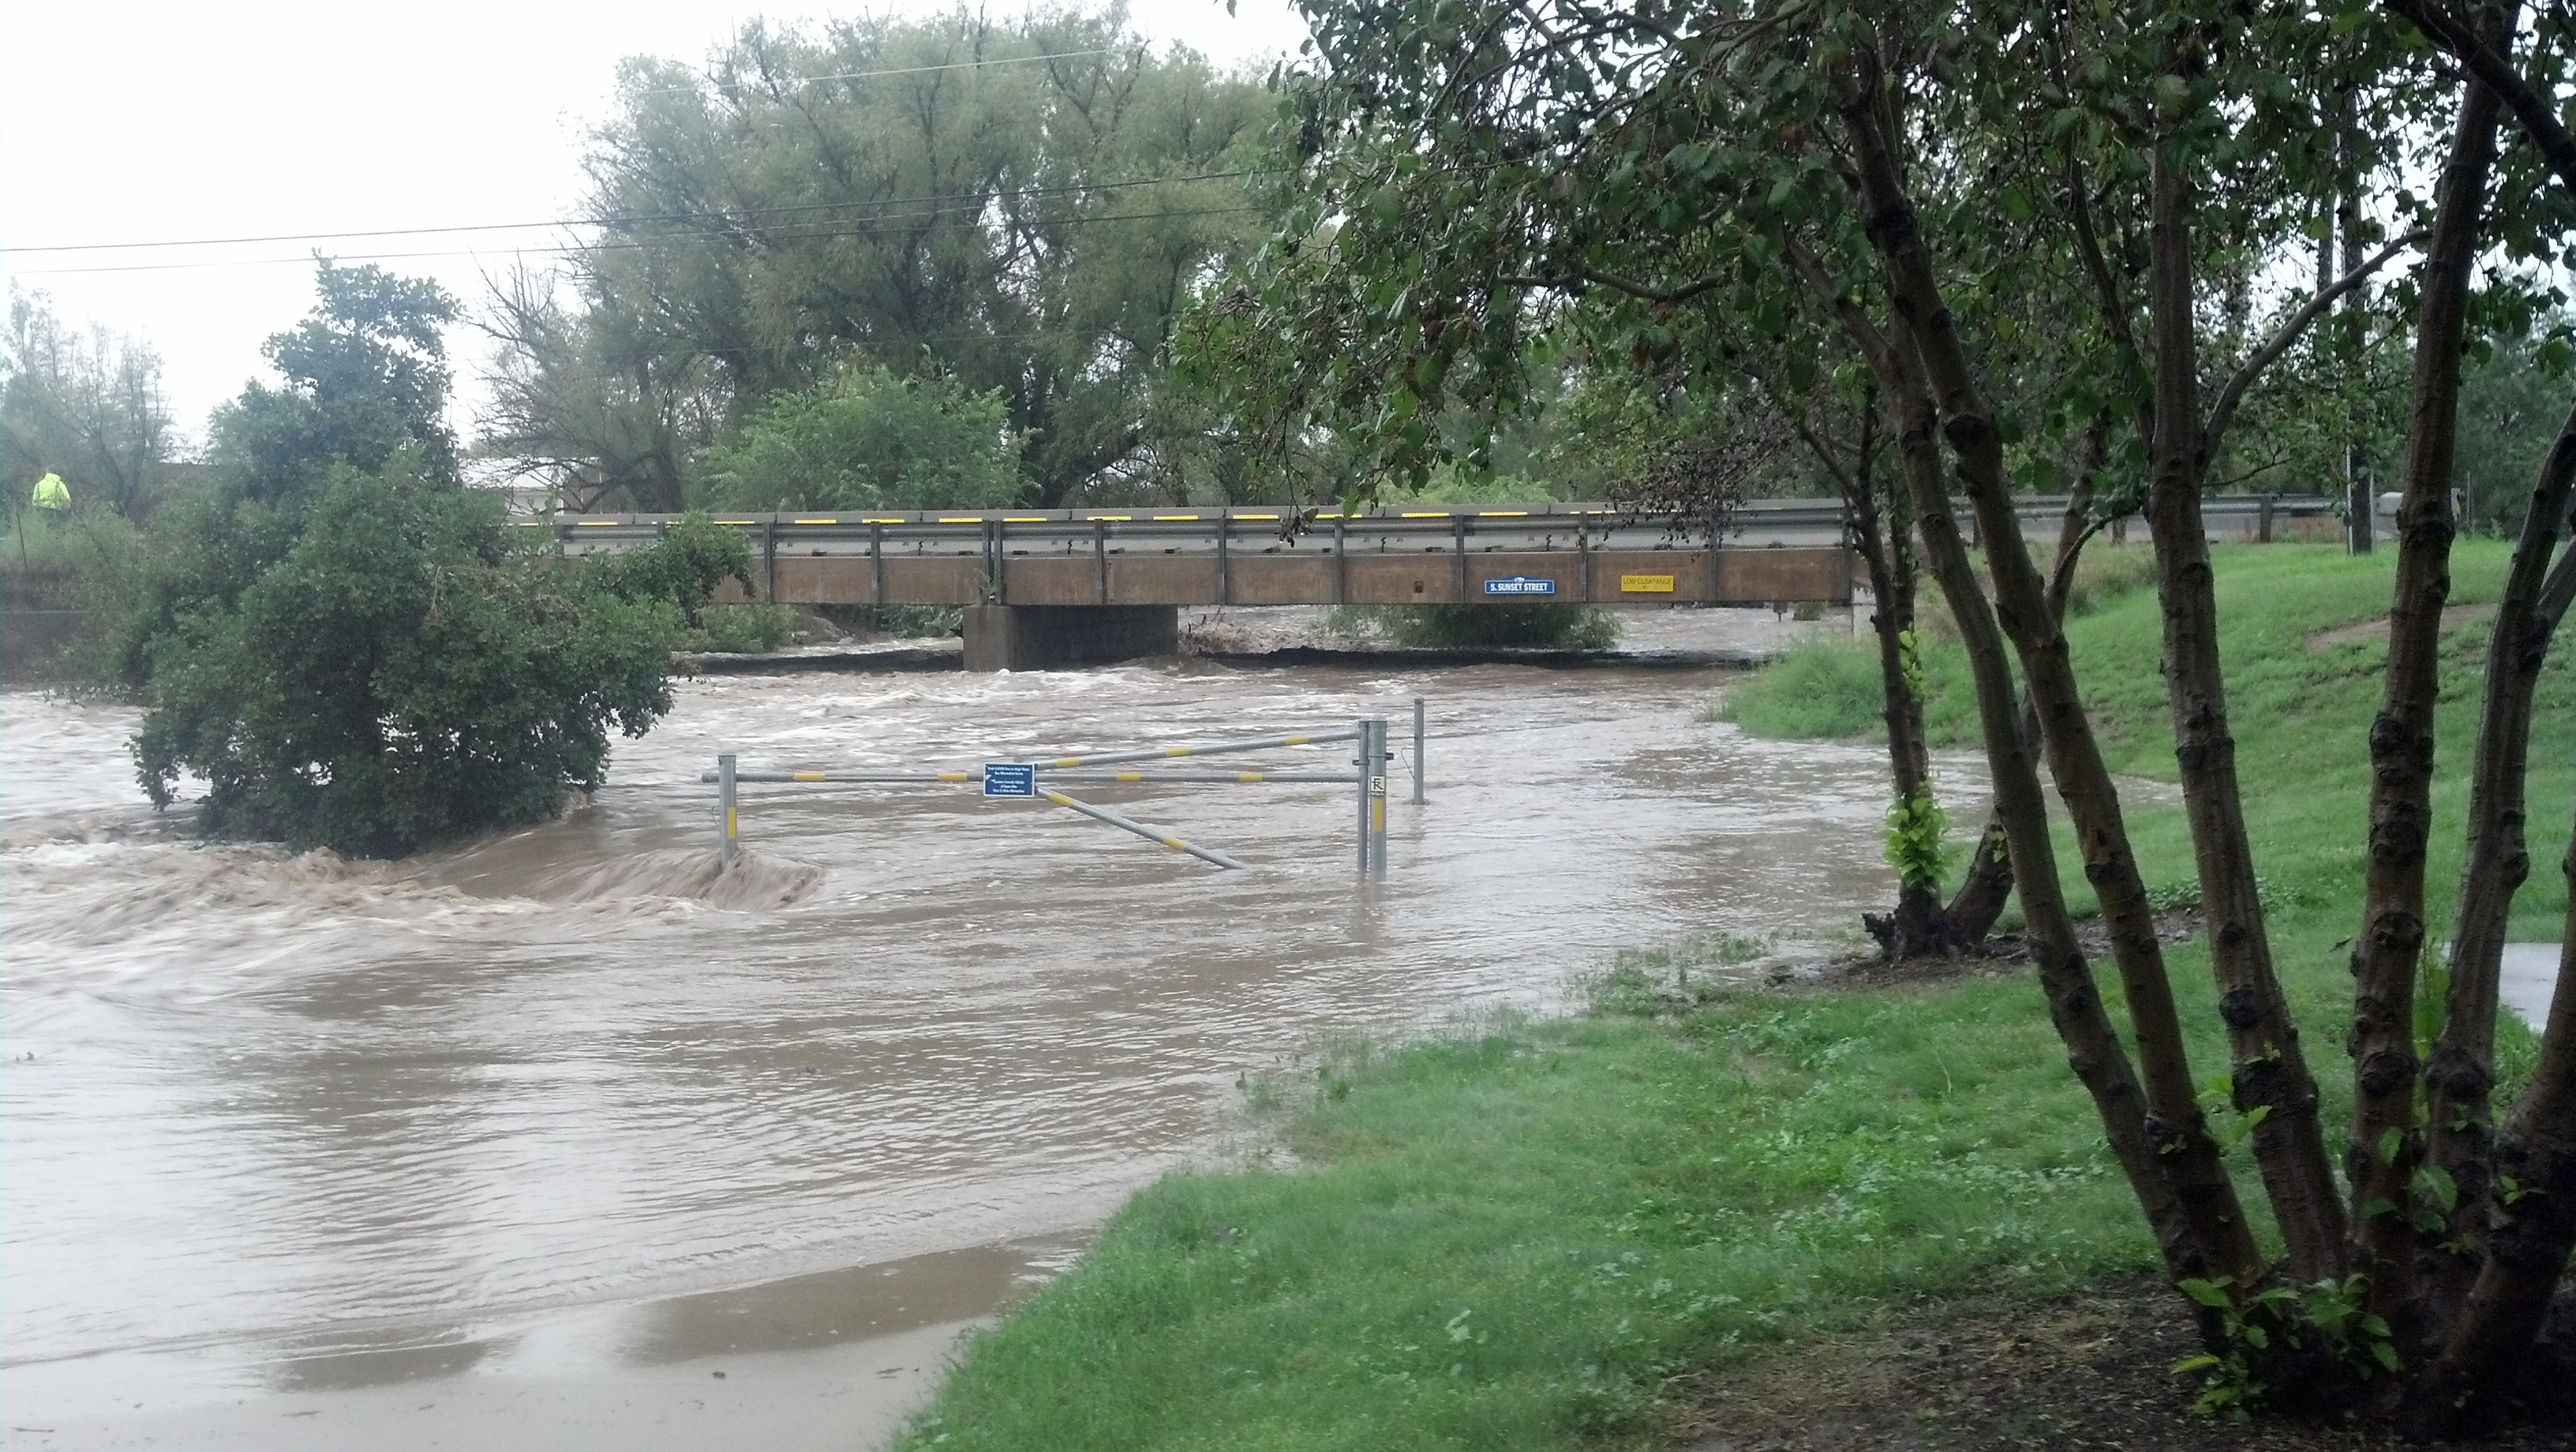 Listening to the train barrier warning bells, the lights flashing, but it's the St. Vrain rushing by…